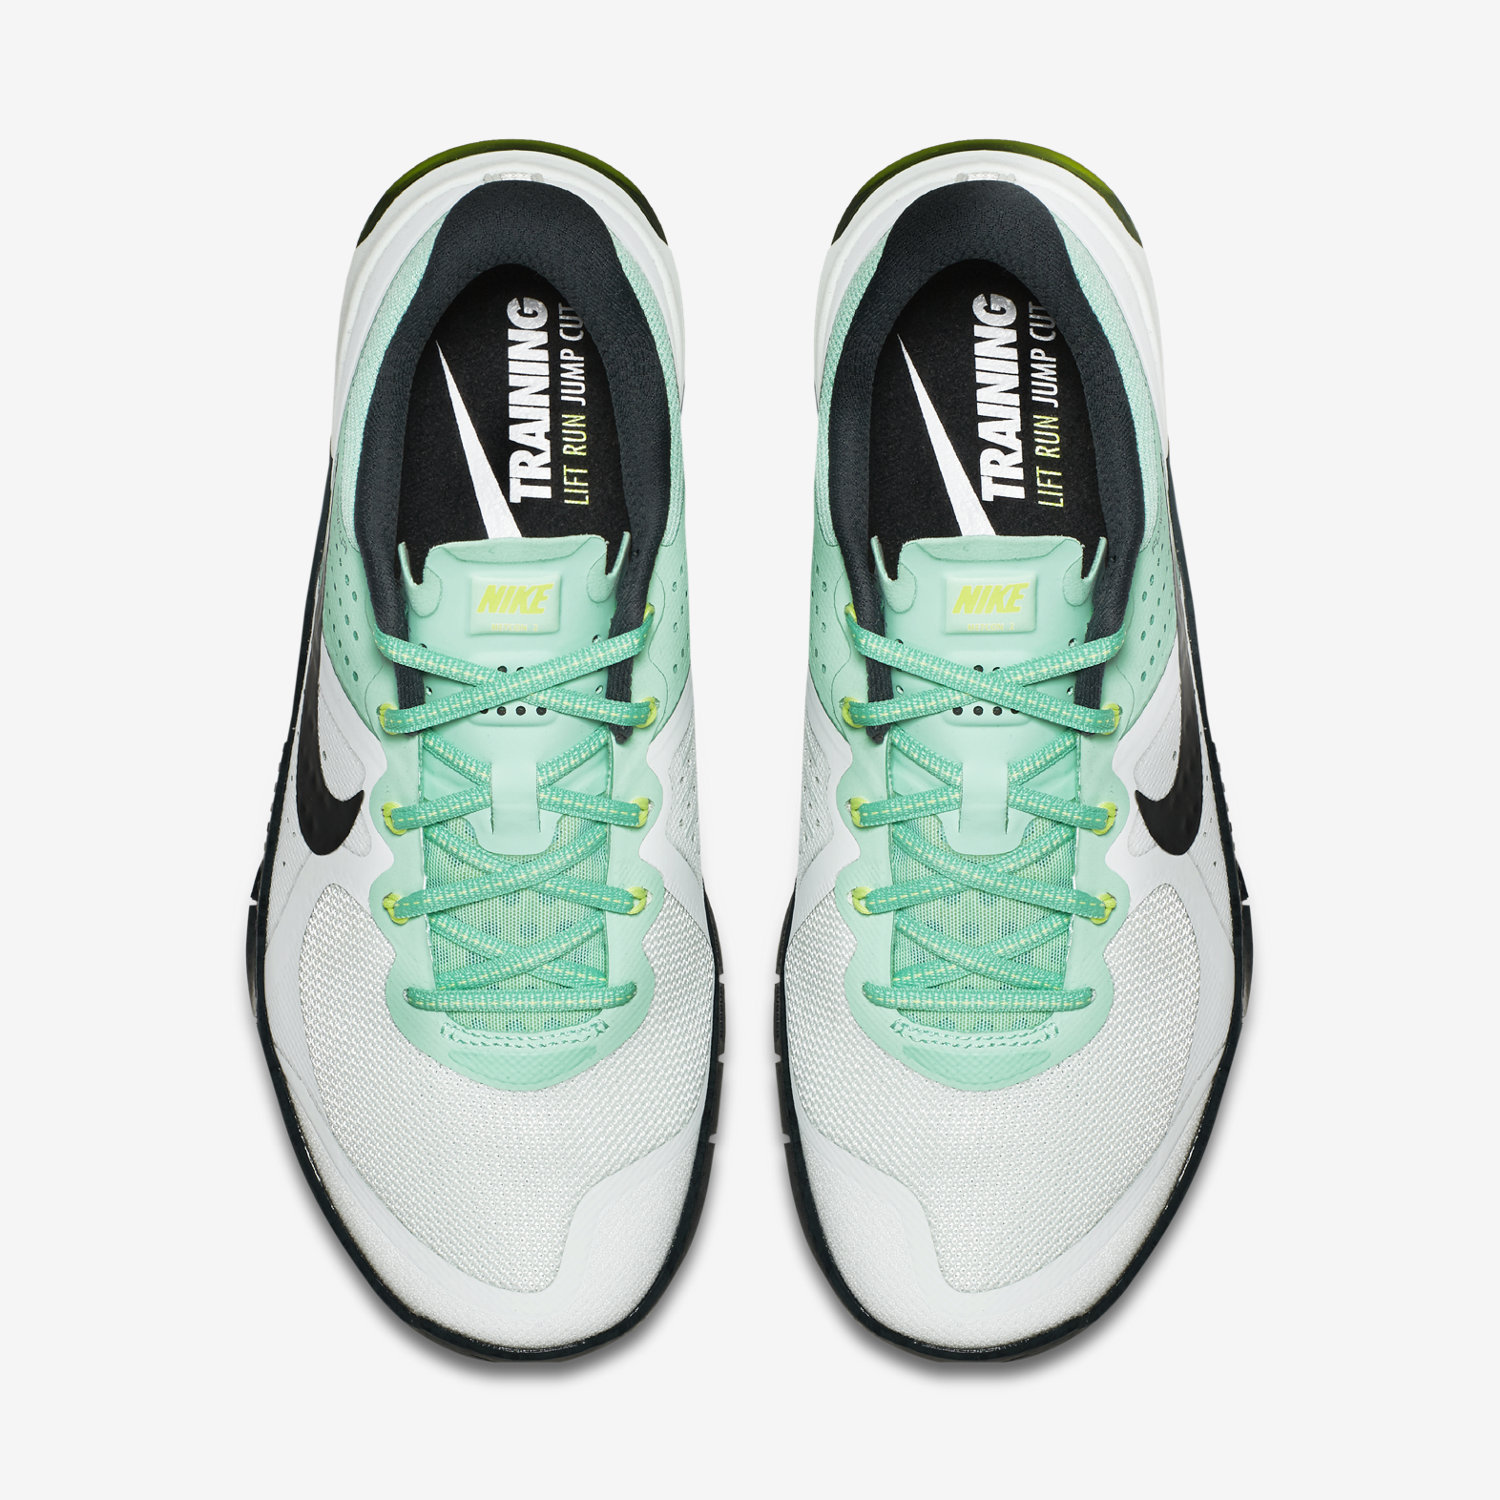 Under Armour Charged Core Women S Training Shoes Aw16 Black Trainers Elegante Shirts